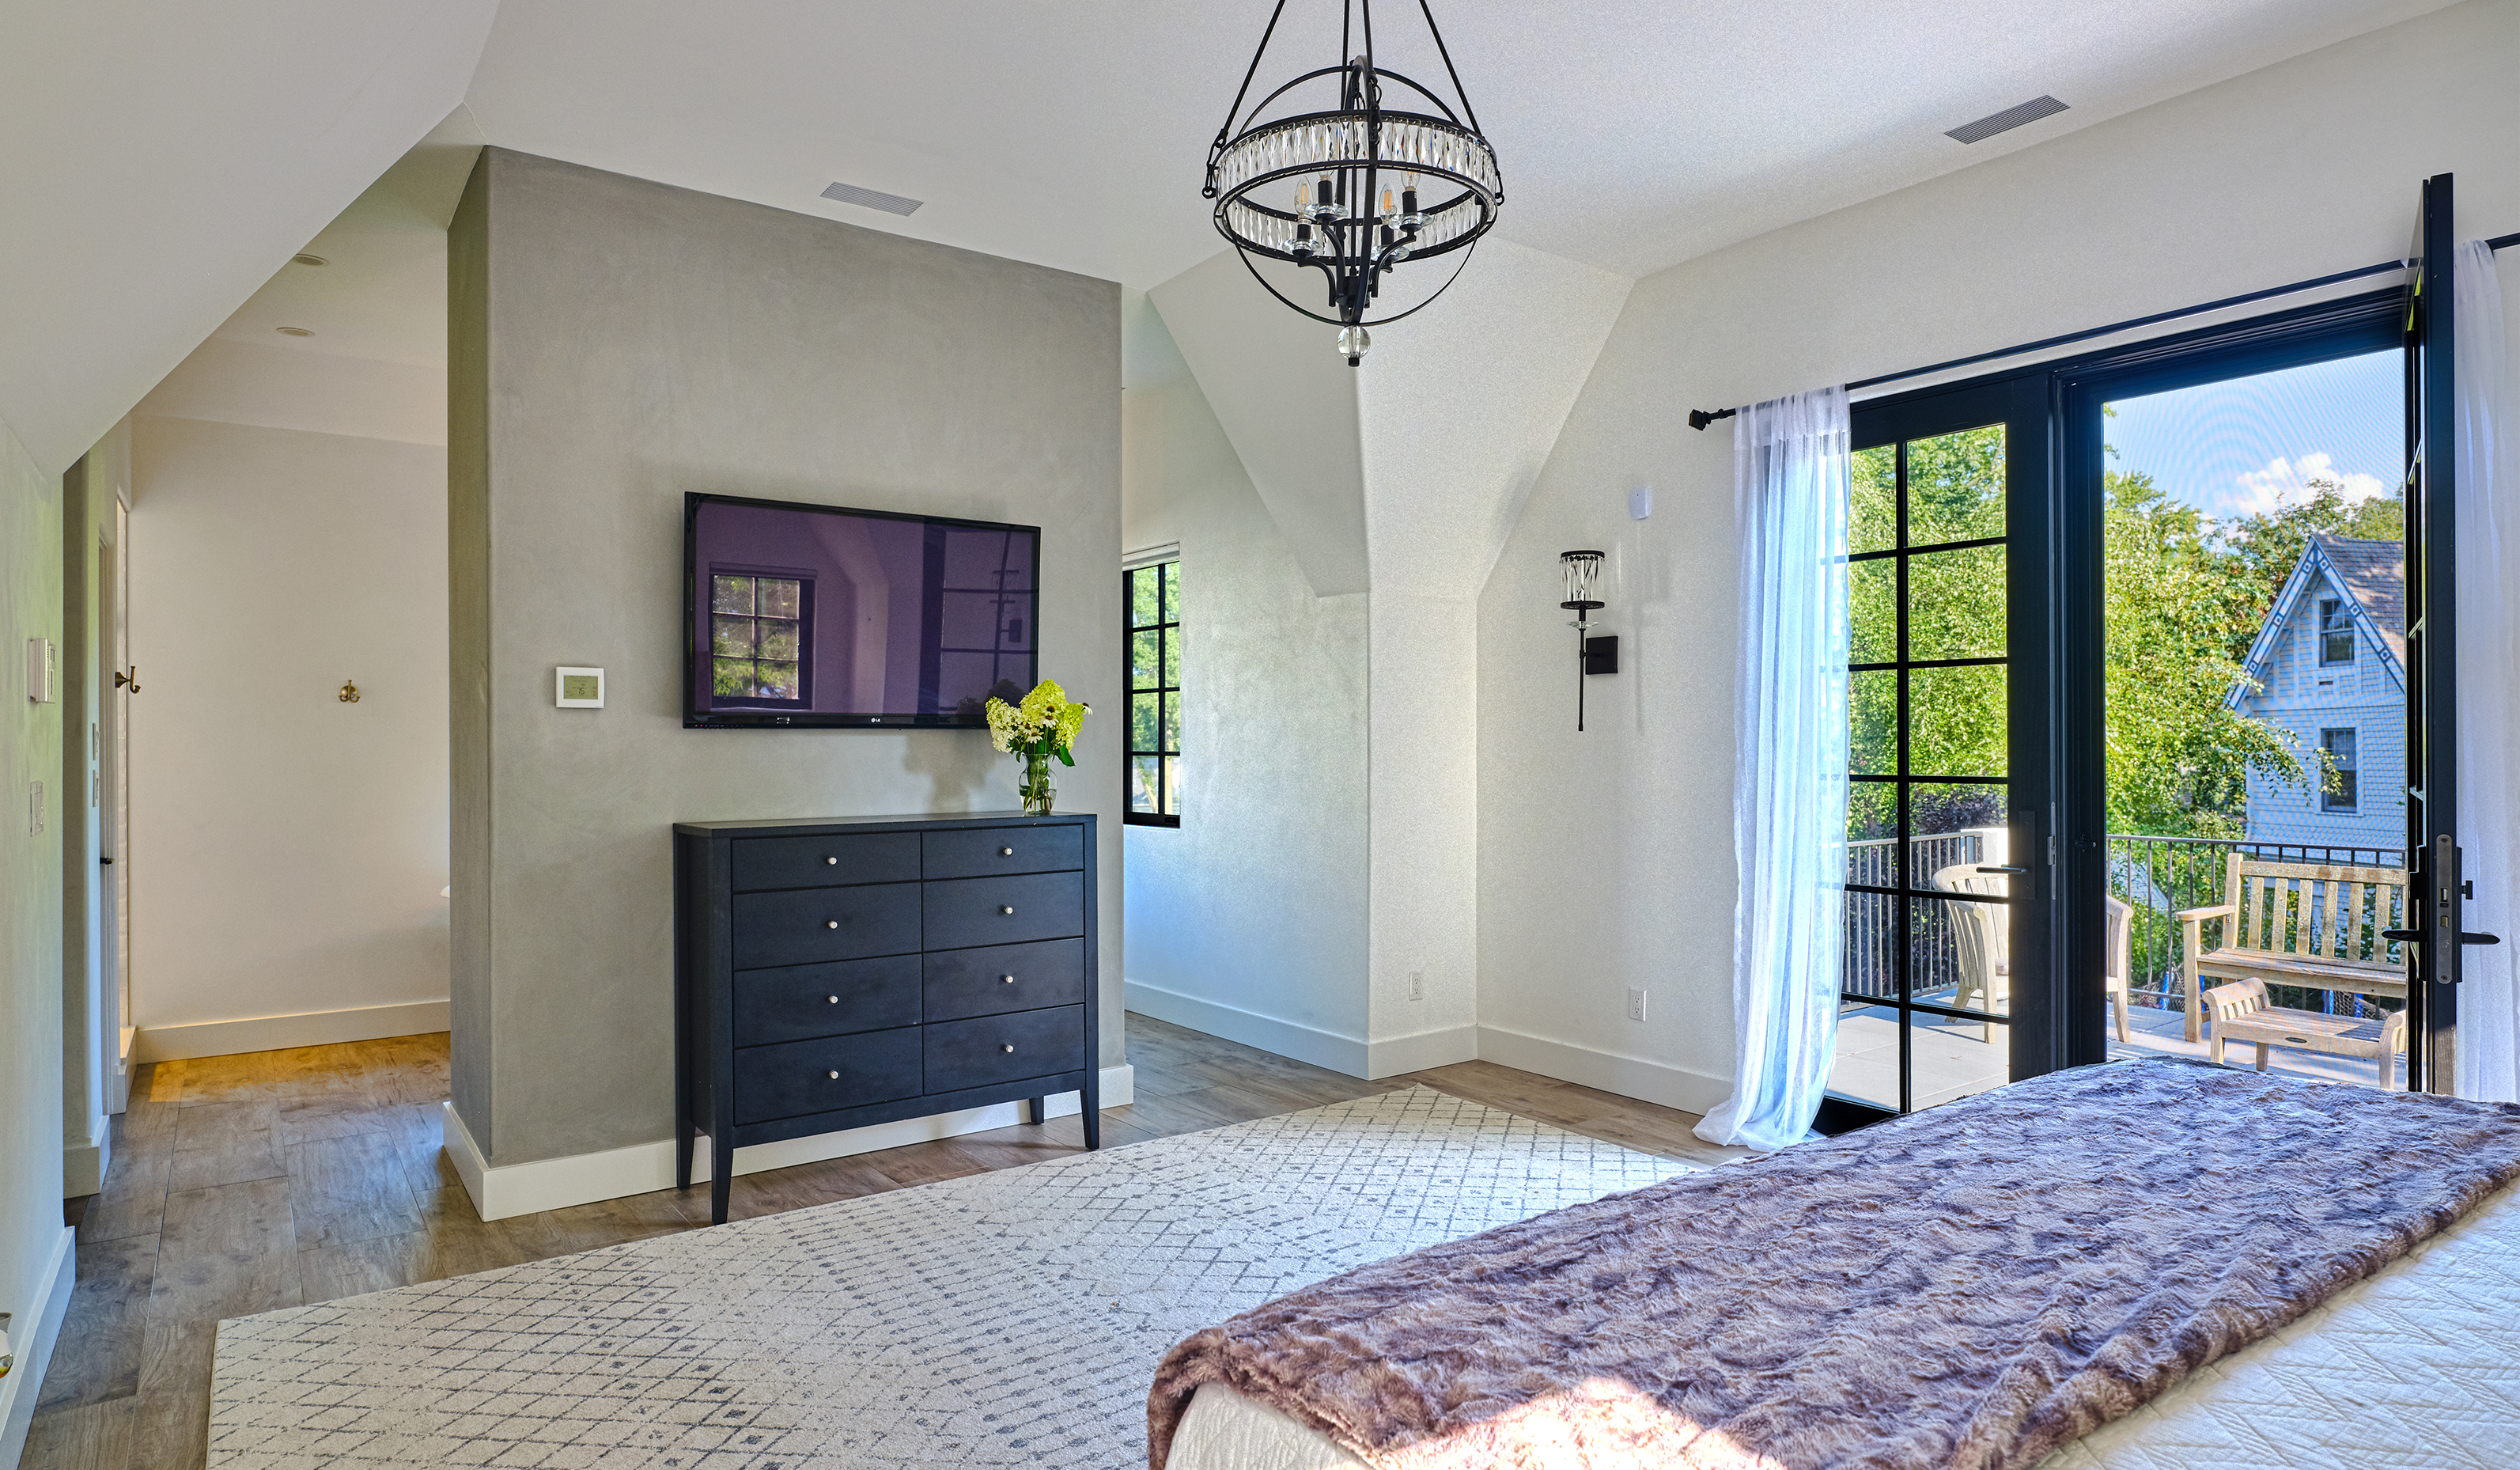 Larchmont NY custom stucco cottage master bedroom with a view and partition wall